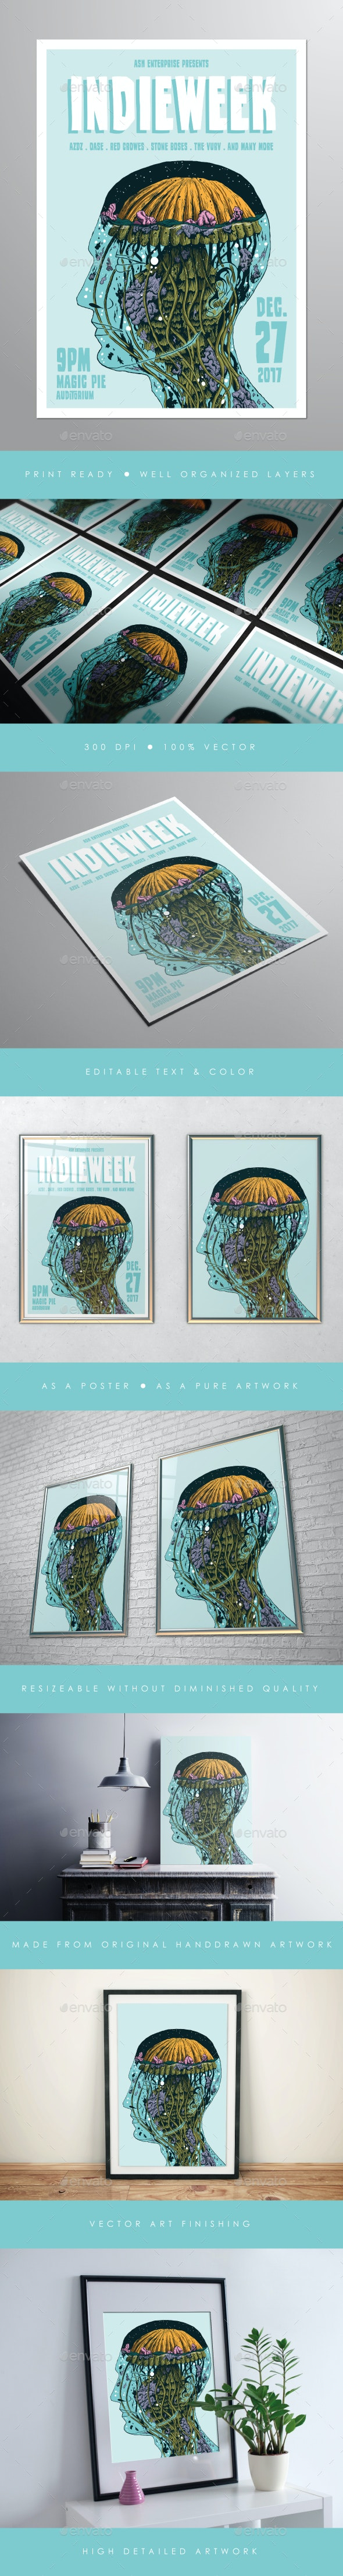 Illustrated Indie Week Flyer Poster - Concerts Events